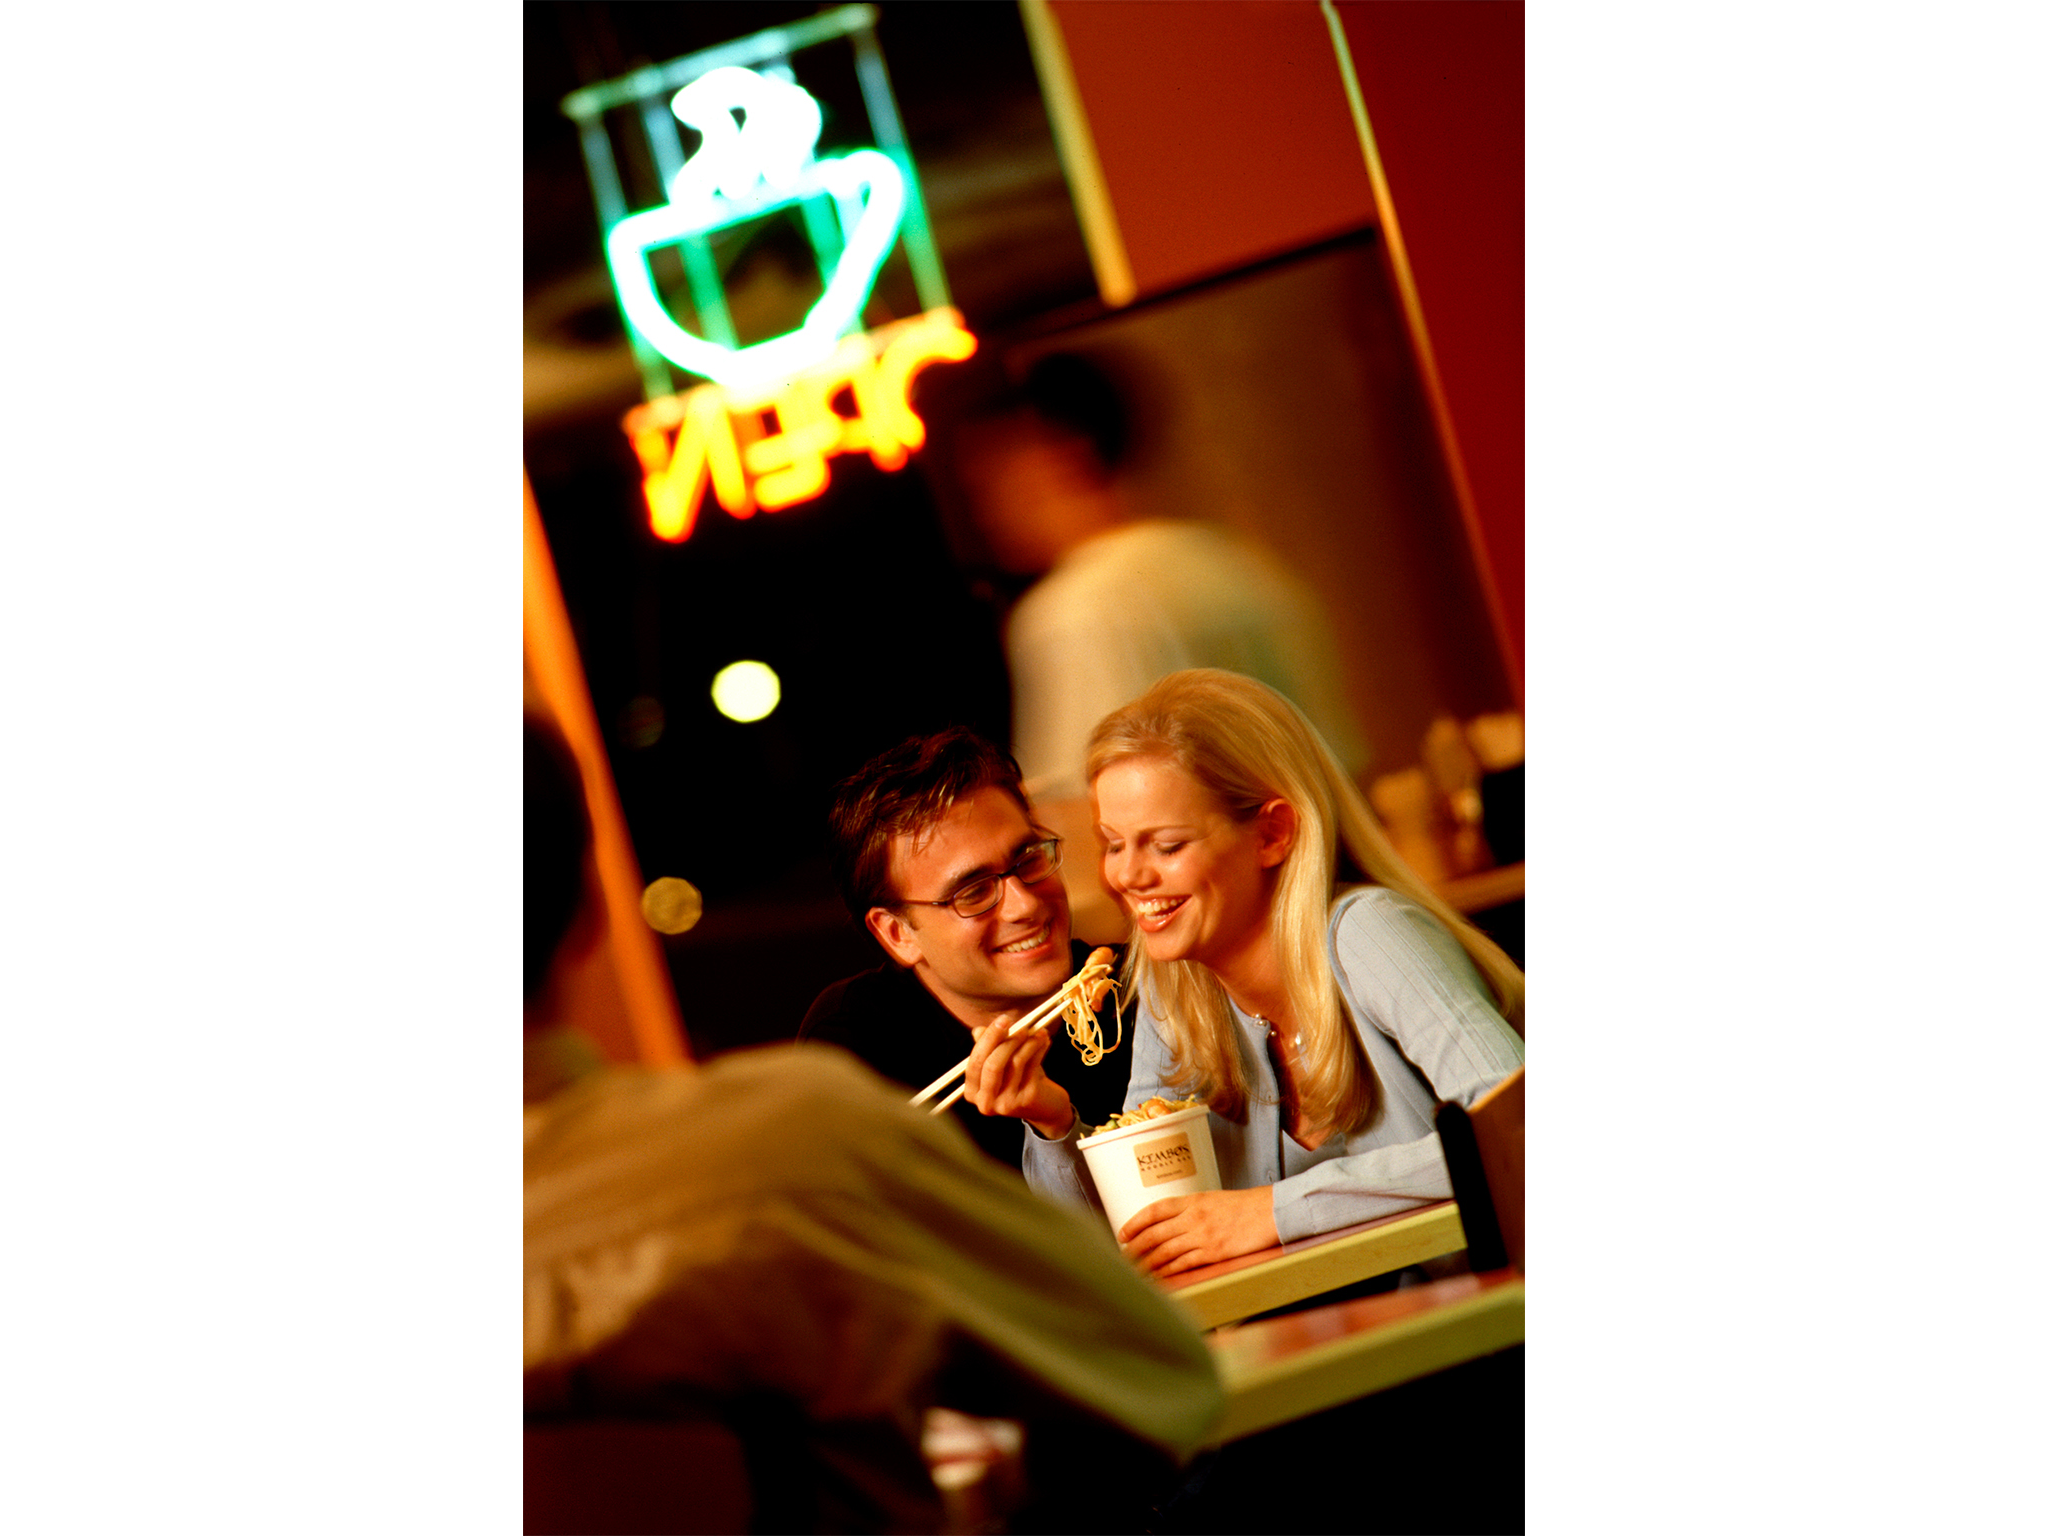 Couple eating noodles with neon sign